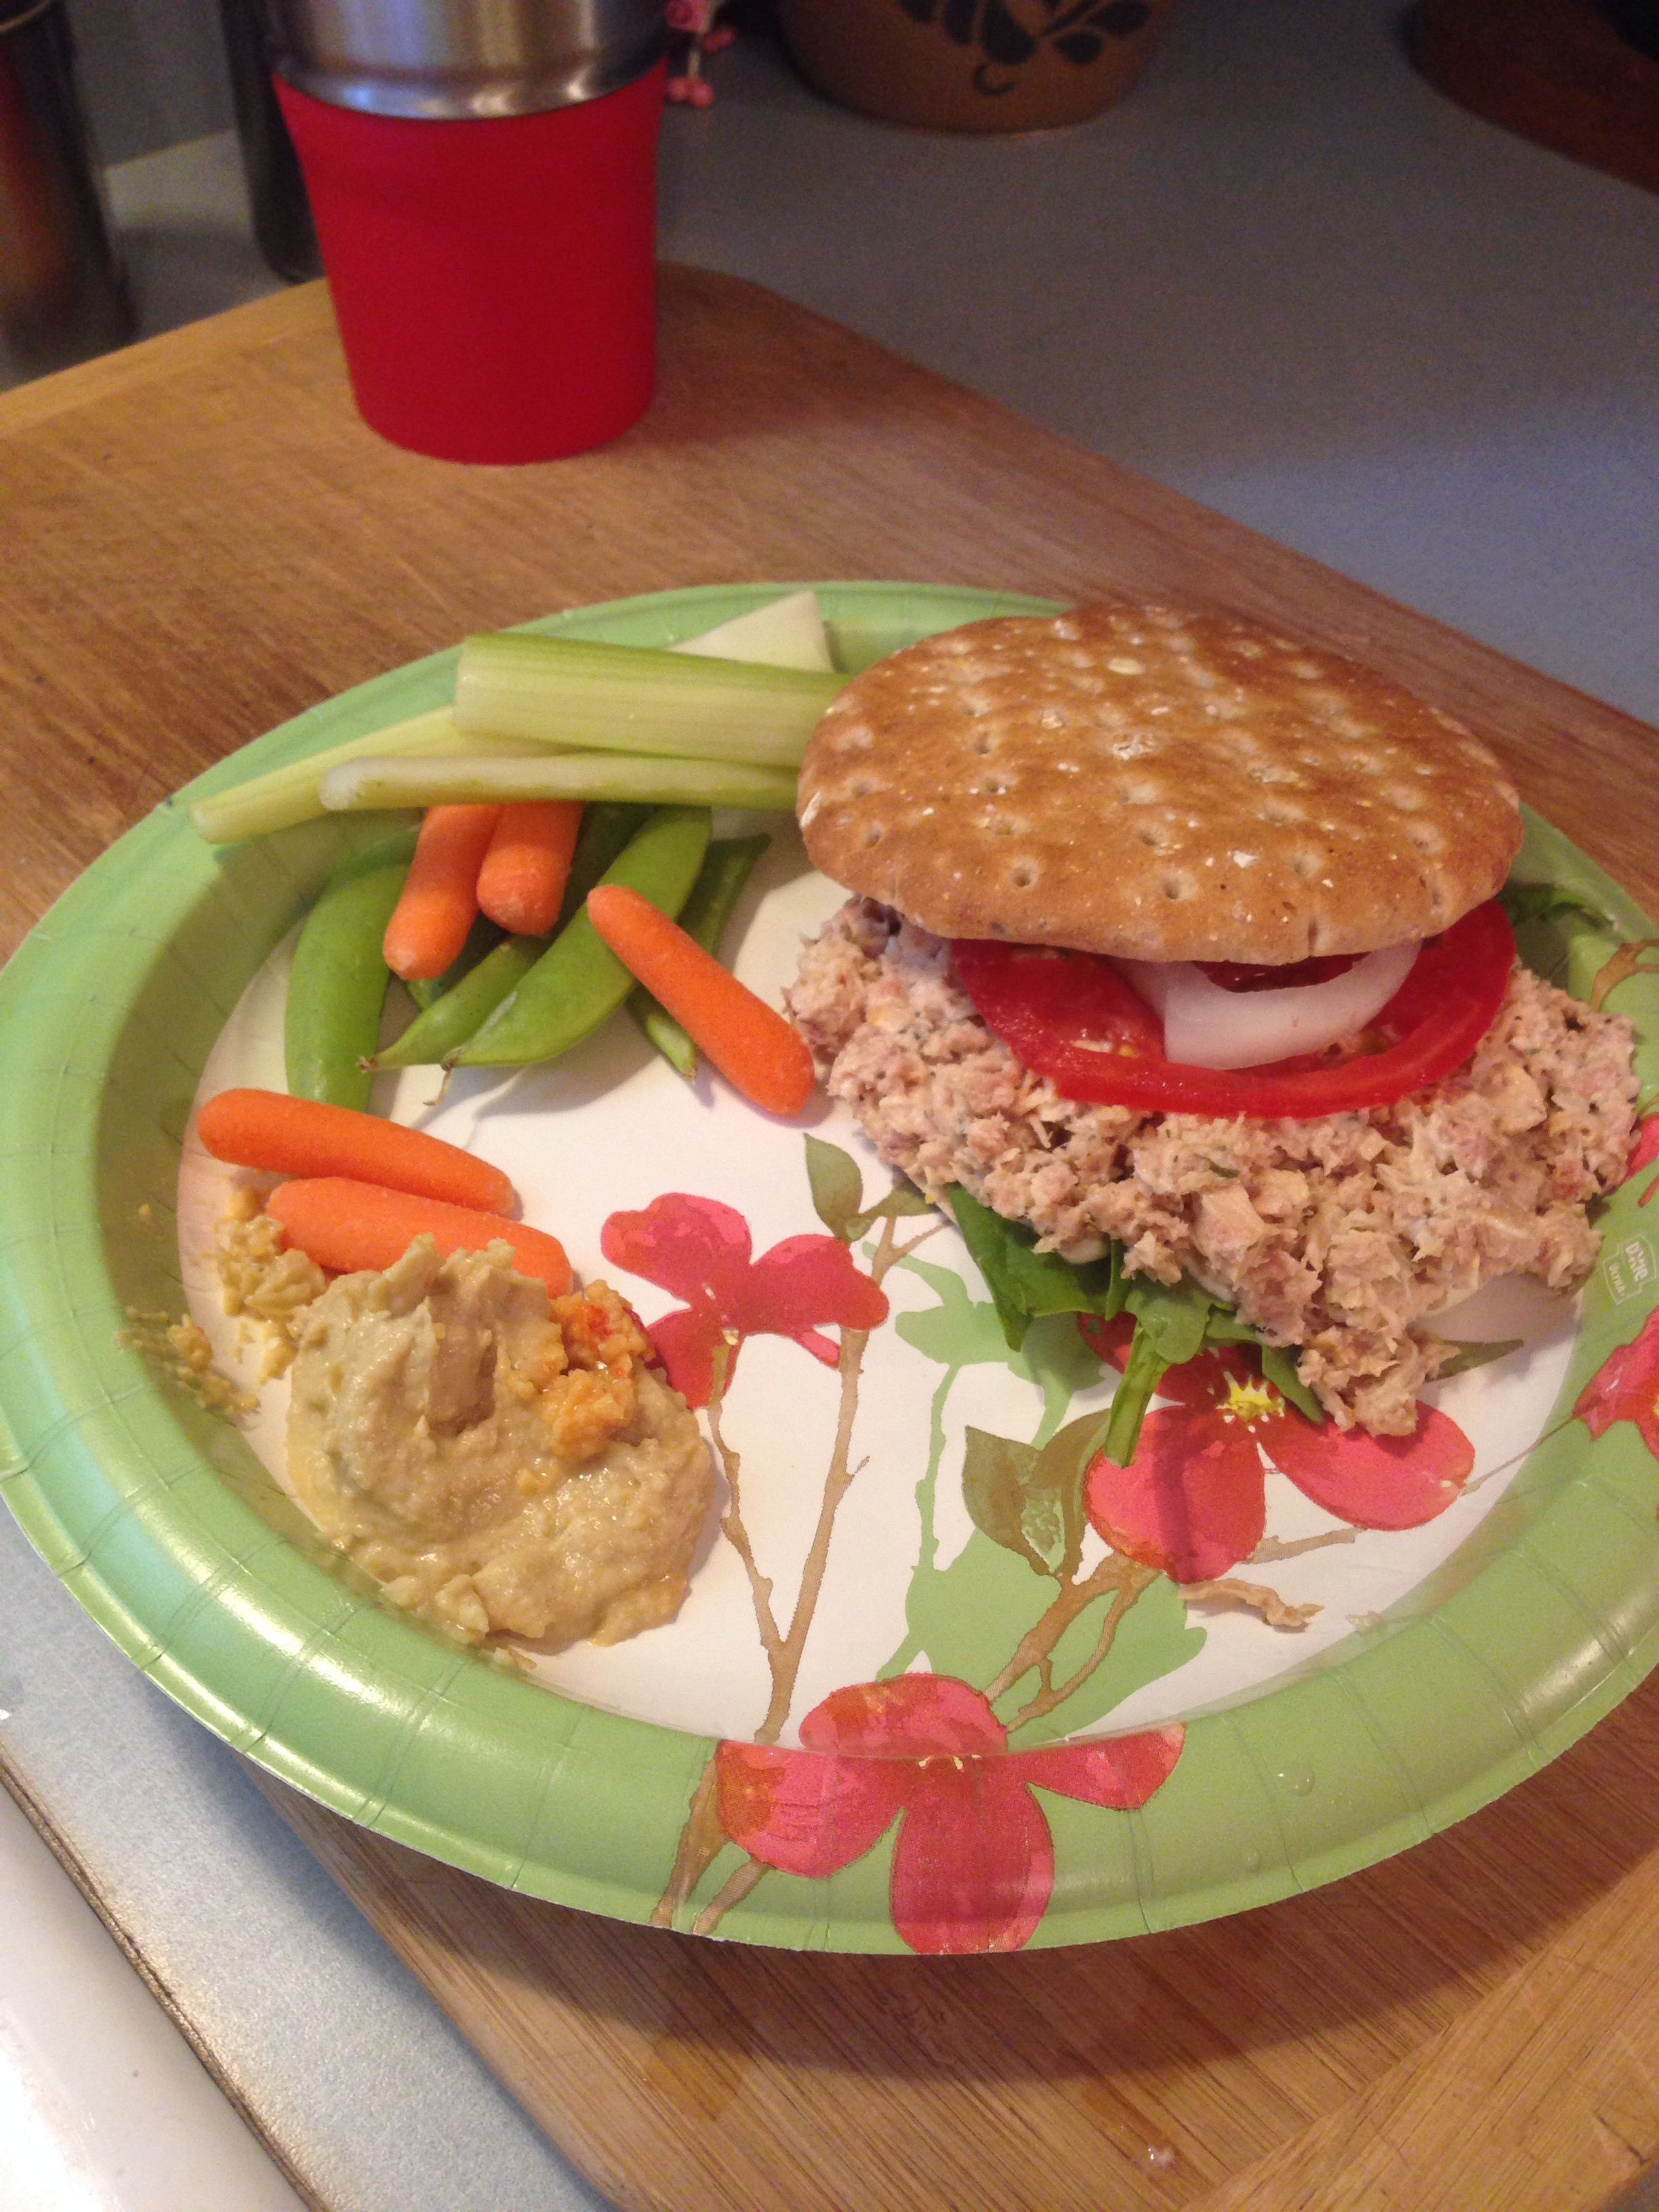 Day 22; lunch: tuna sandwich with Argula, tomato, onion, avocado and mayo with olive oil. Side of garlic hummus with carrots, celery, snap peas